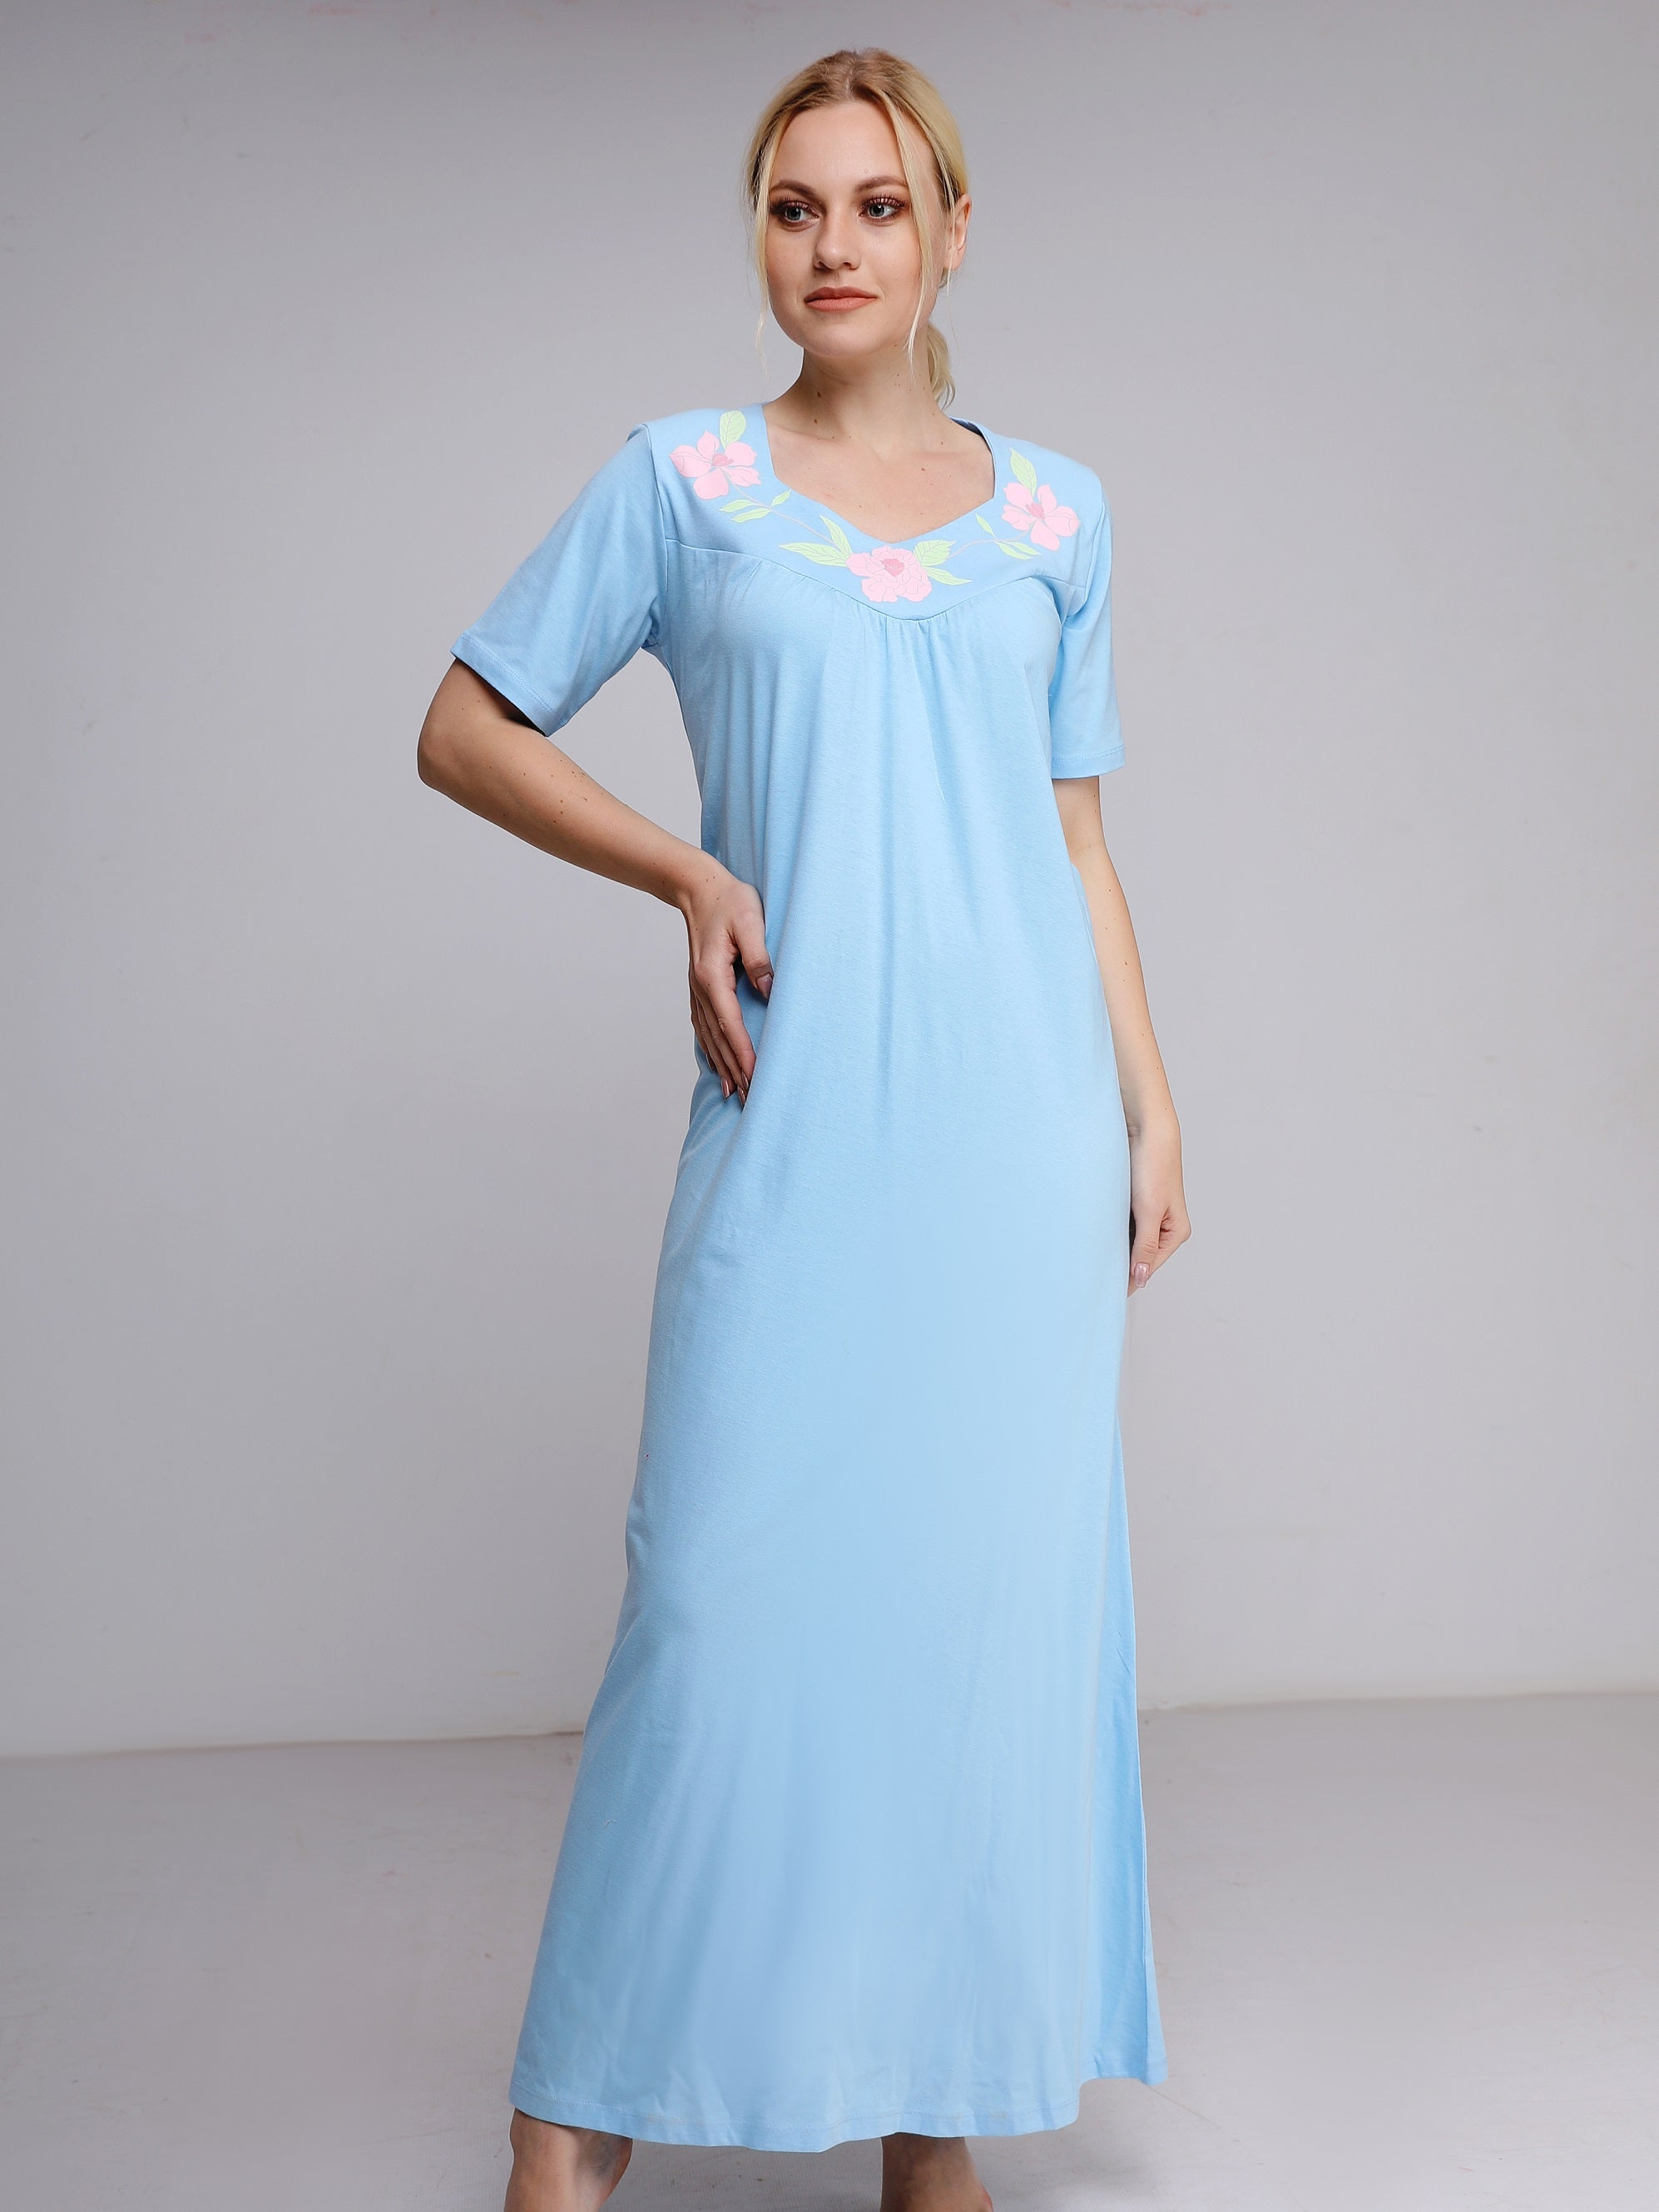 Chic Nightgown with 3 Flowers